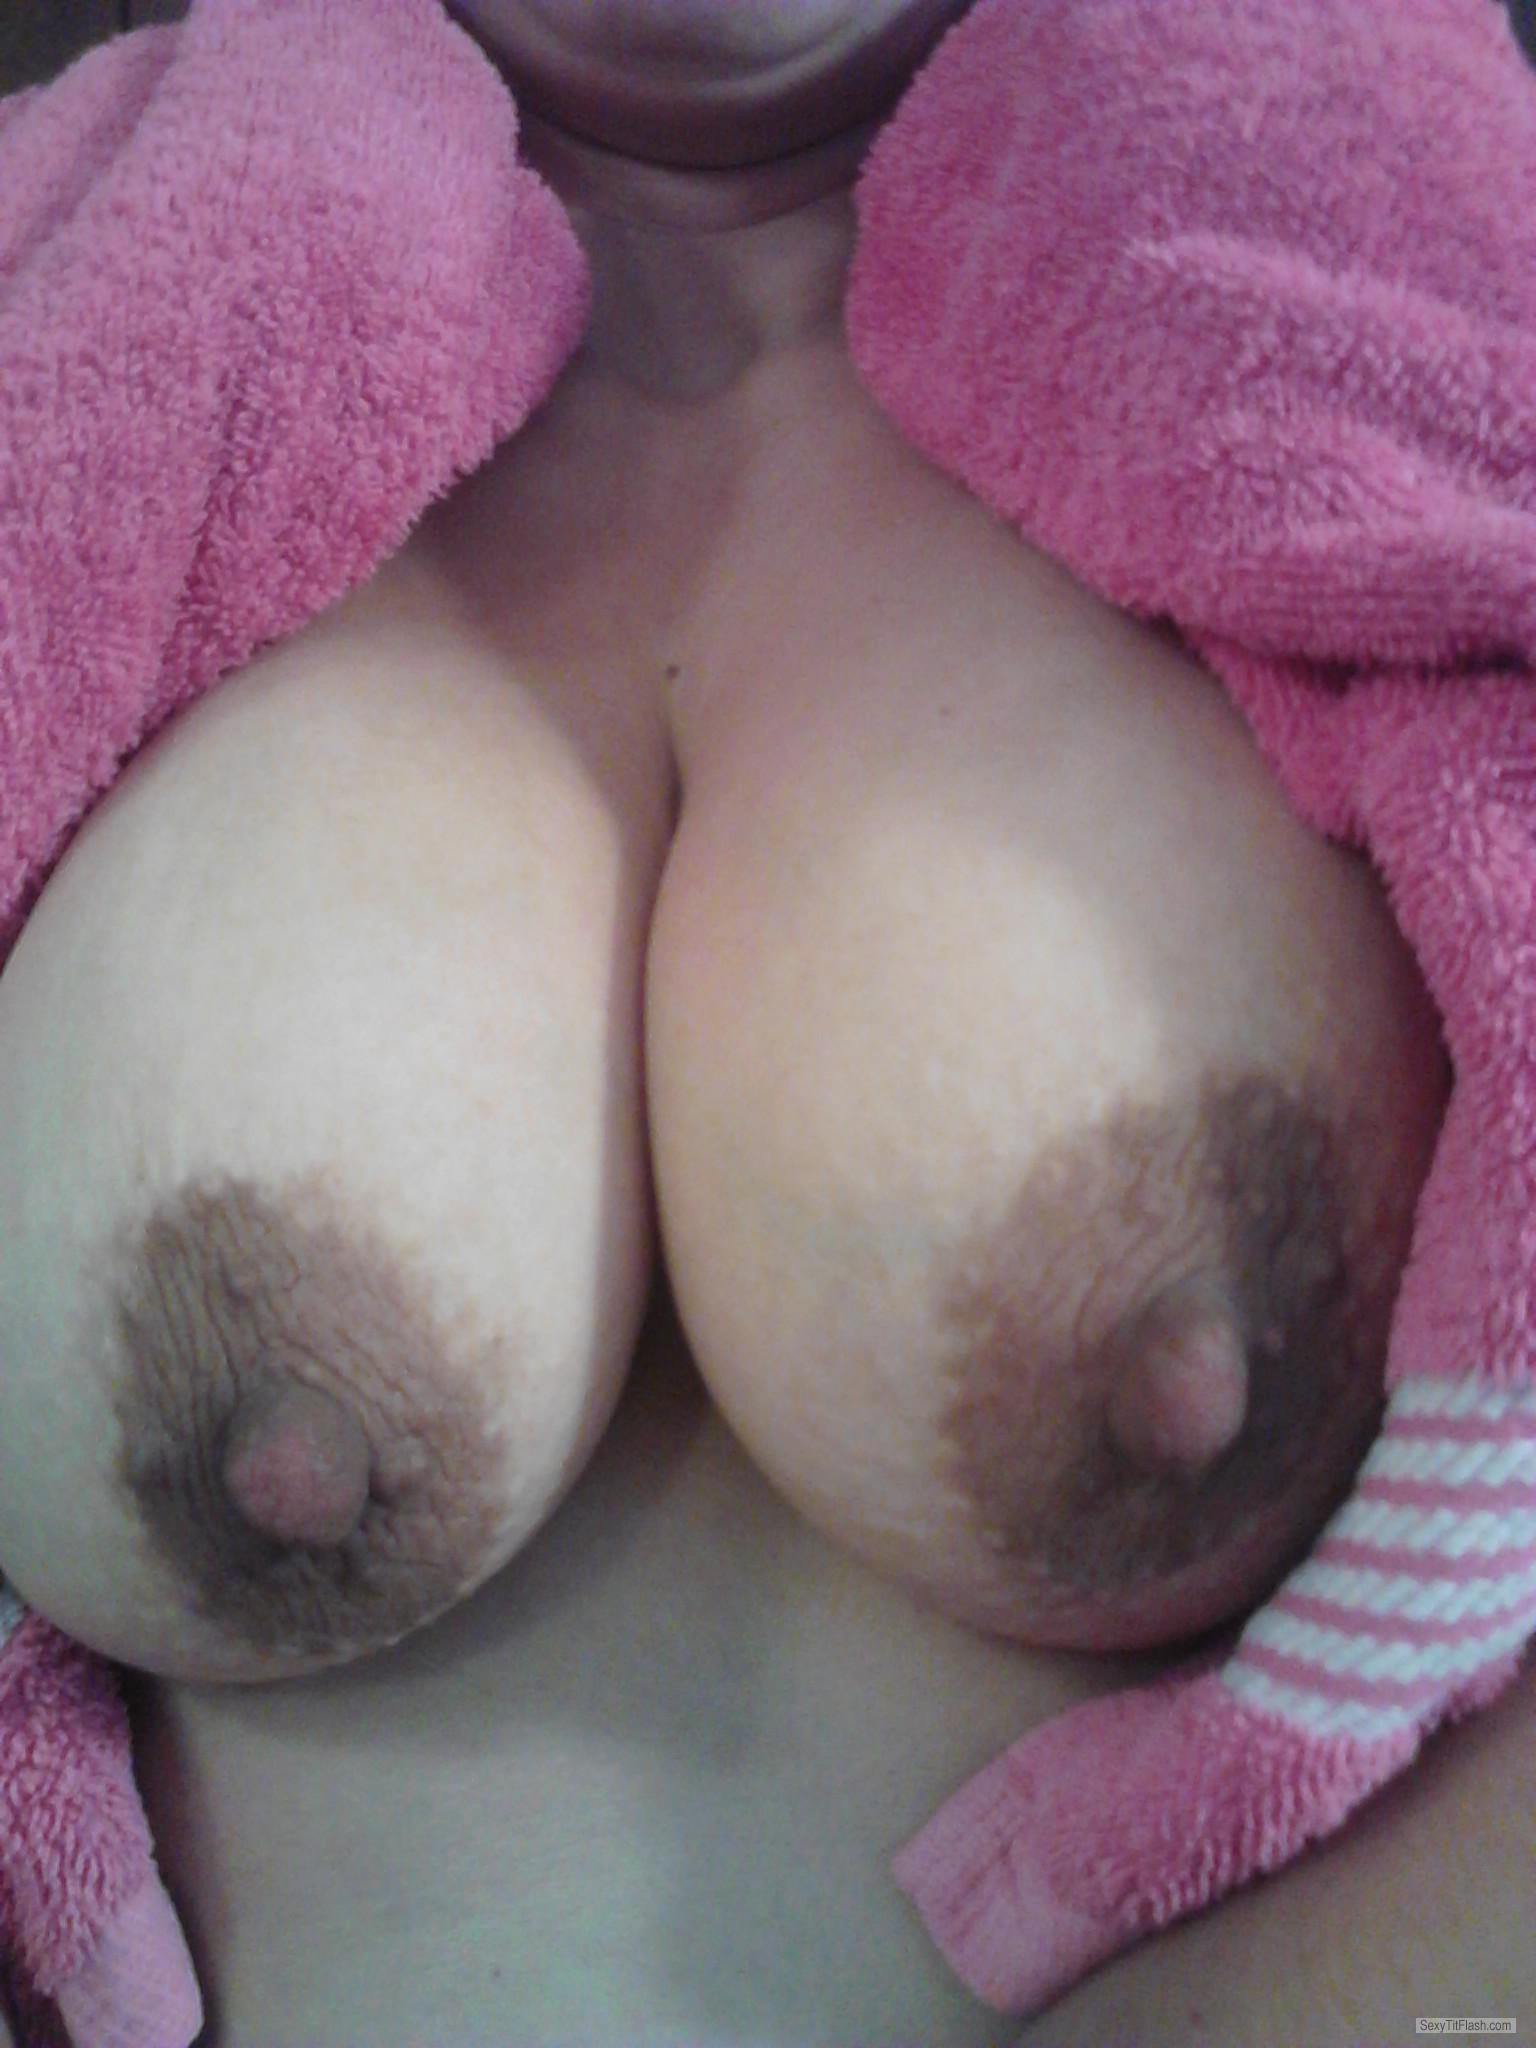 Big Tits Of My Wife Roxy1976